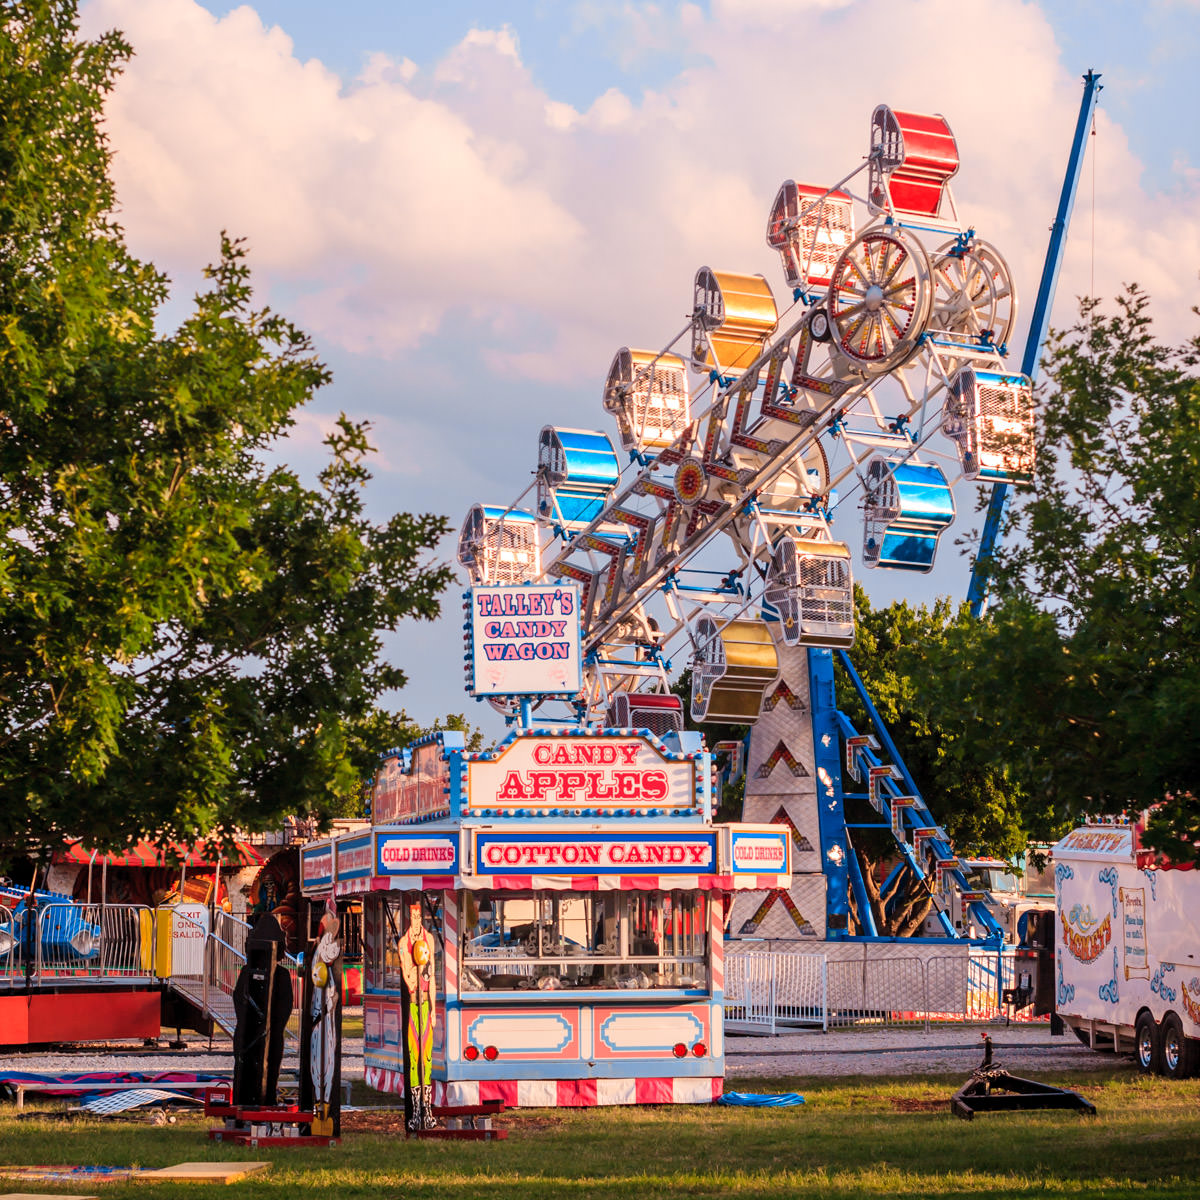 Carnival rides and concession stands being set up for Taste Addison.